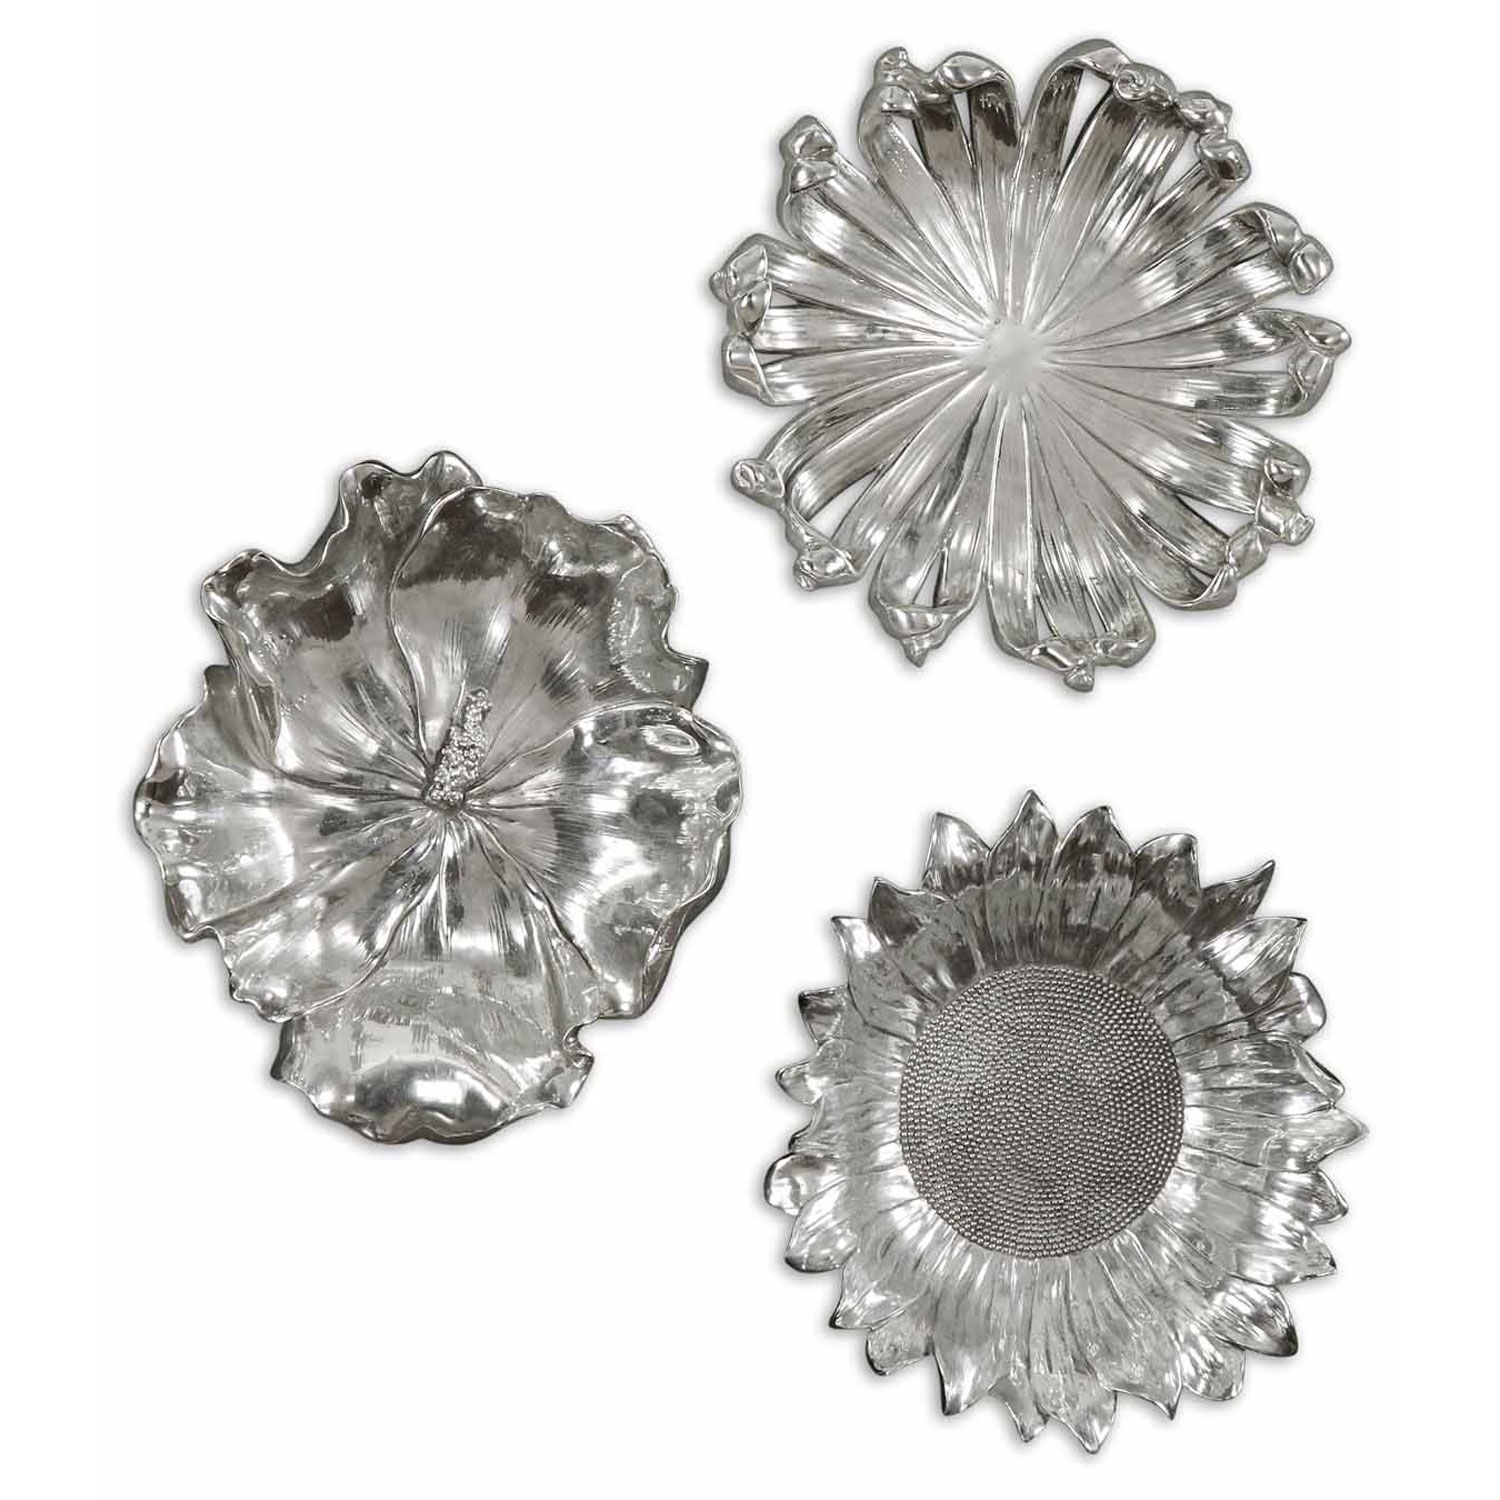 Silver Flowers Metal Wall Art, Set Of Three Uttermost Wall Sculpture With Regard To Silver Wall Art (View 6 of 20)